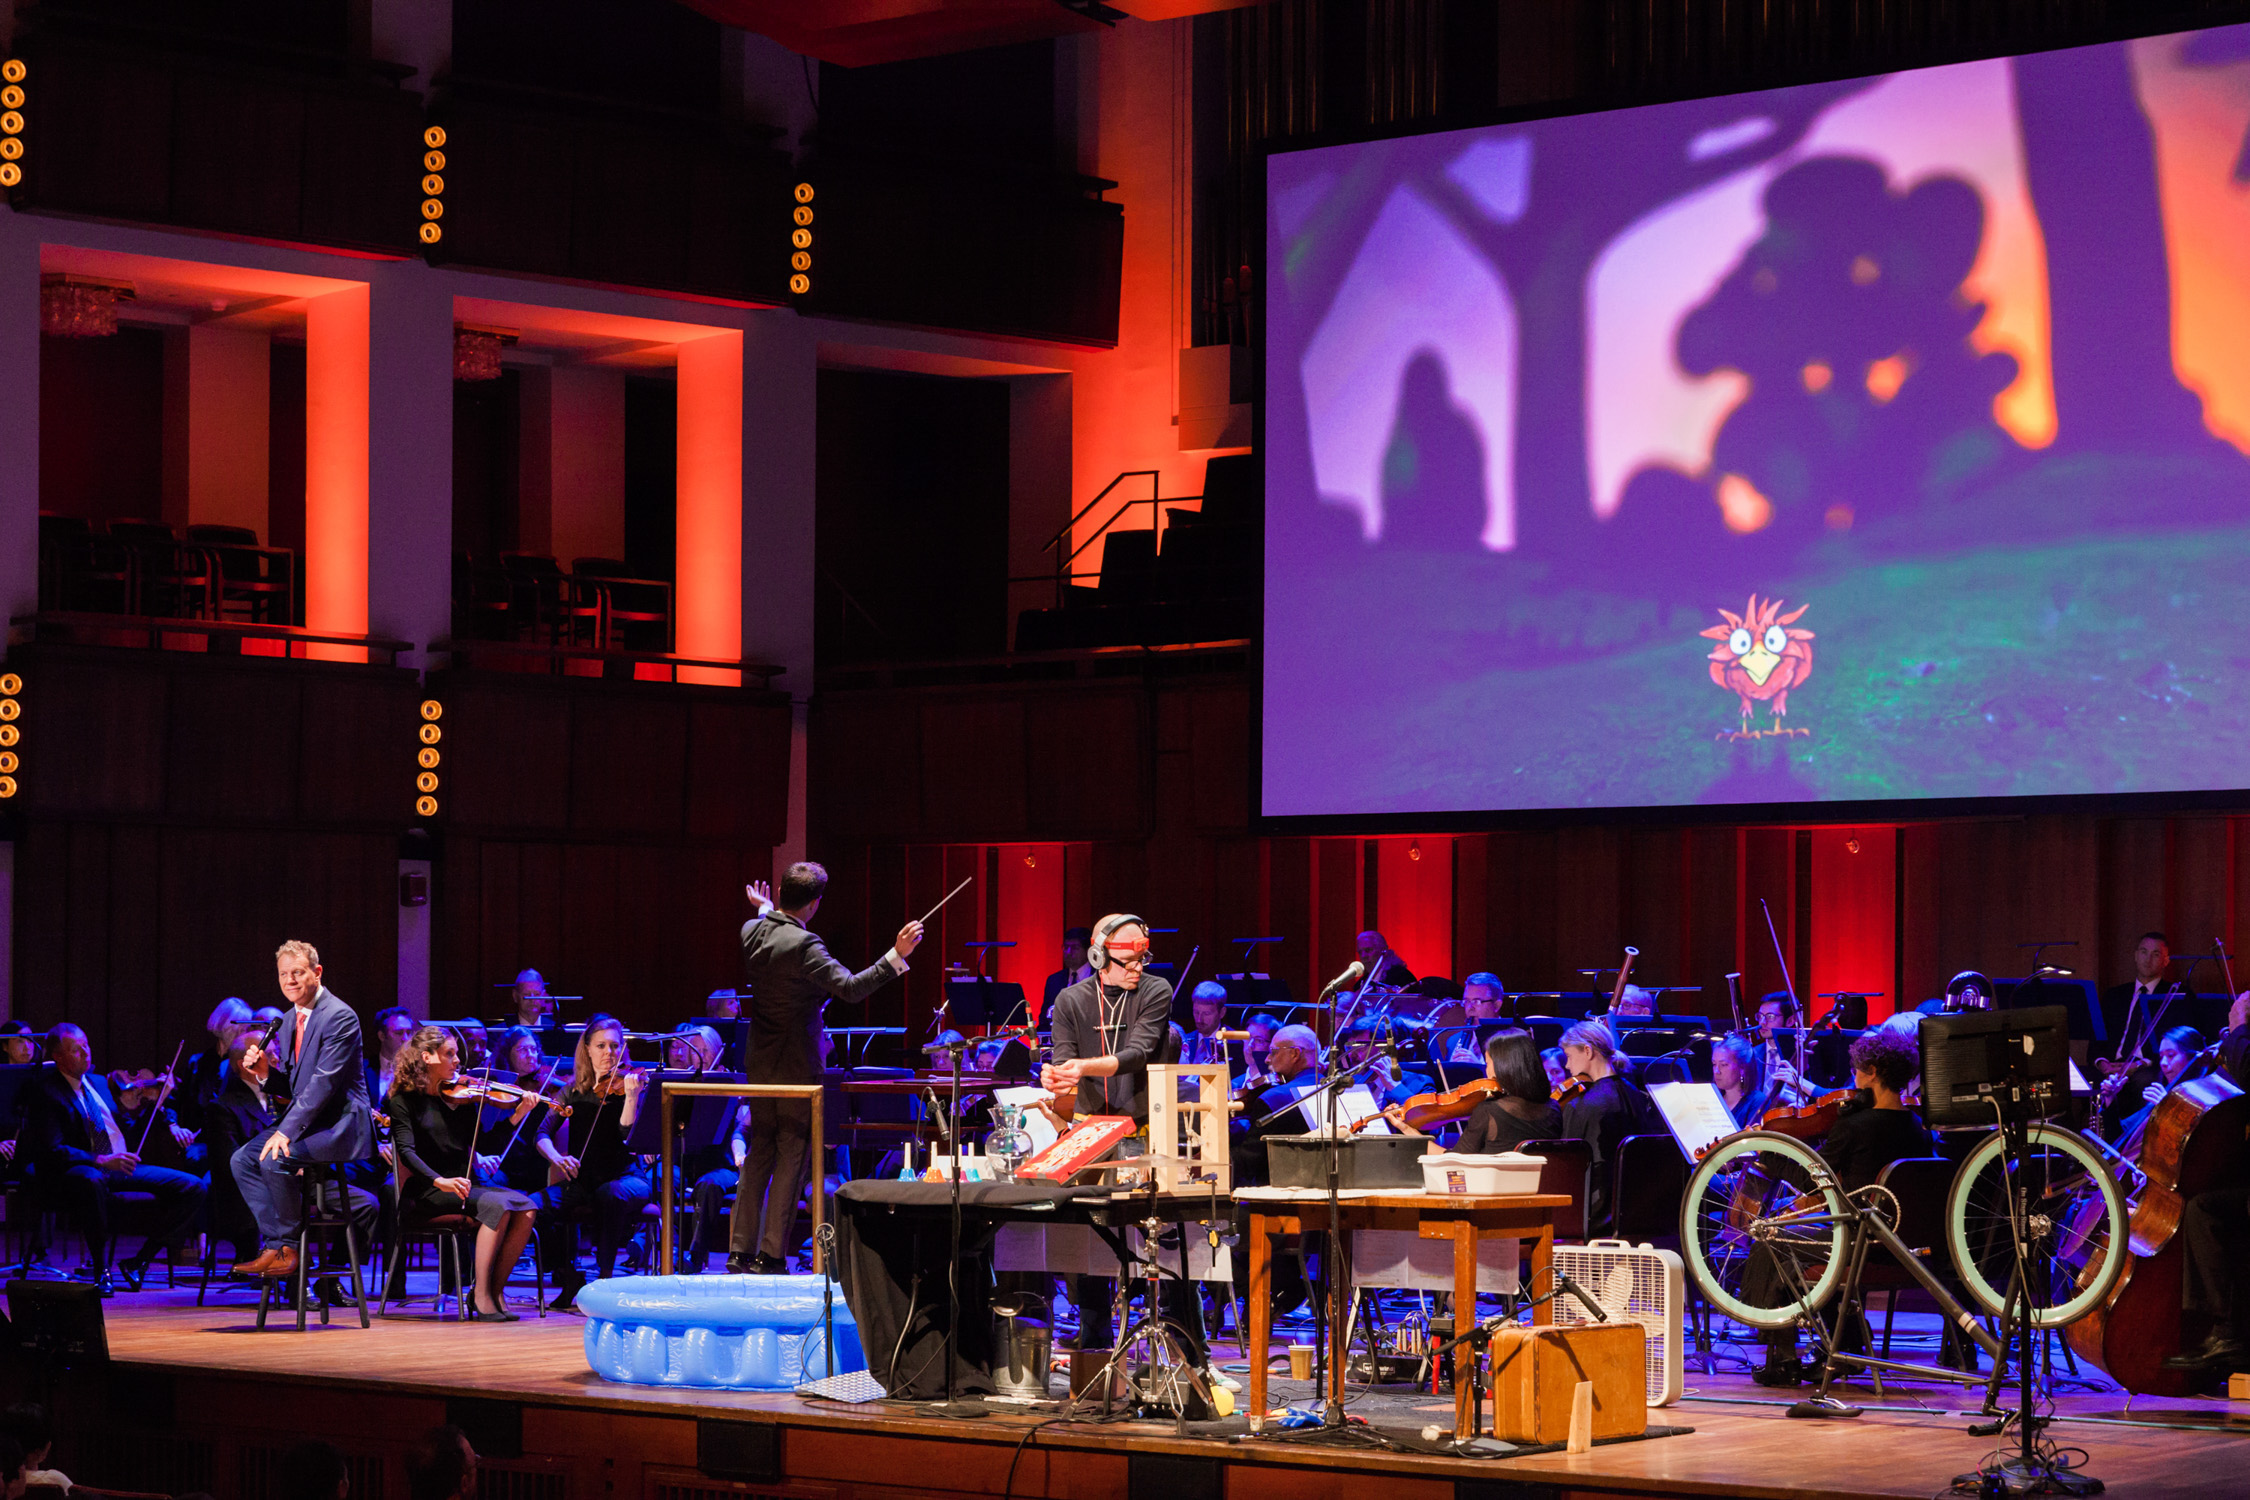 image of National Symphony Orchestra Family Day performance of Peter and the Wolf at Kennedy Center